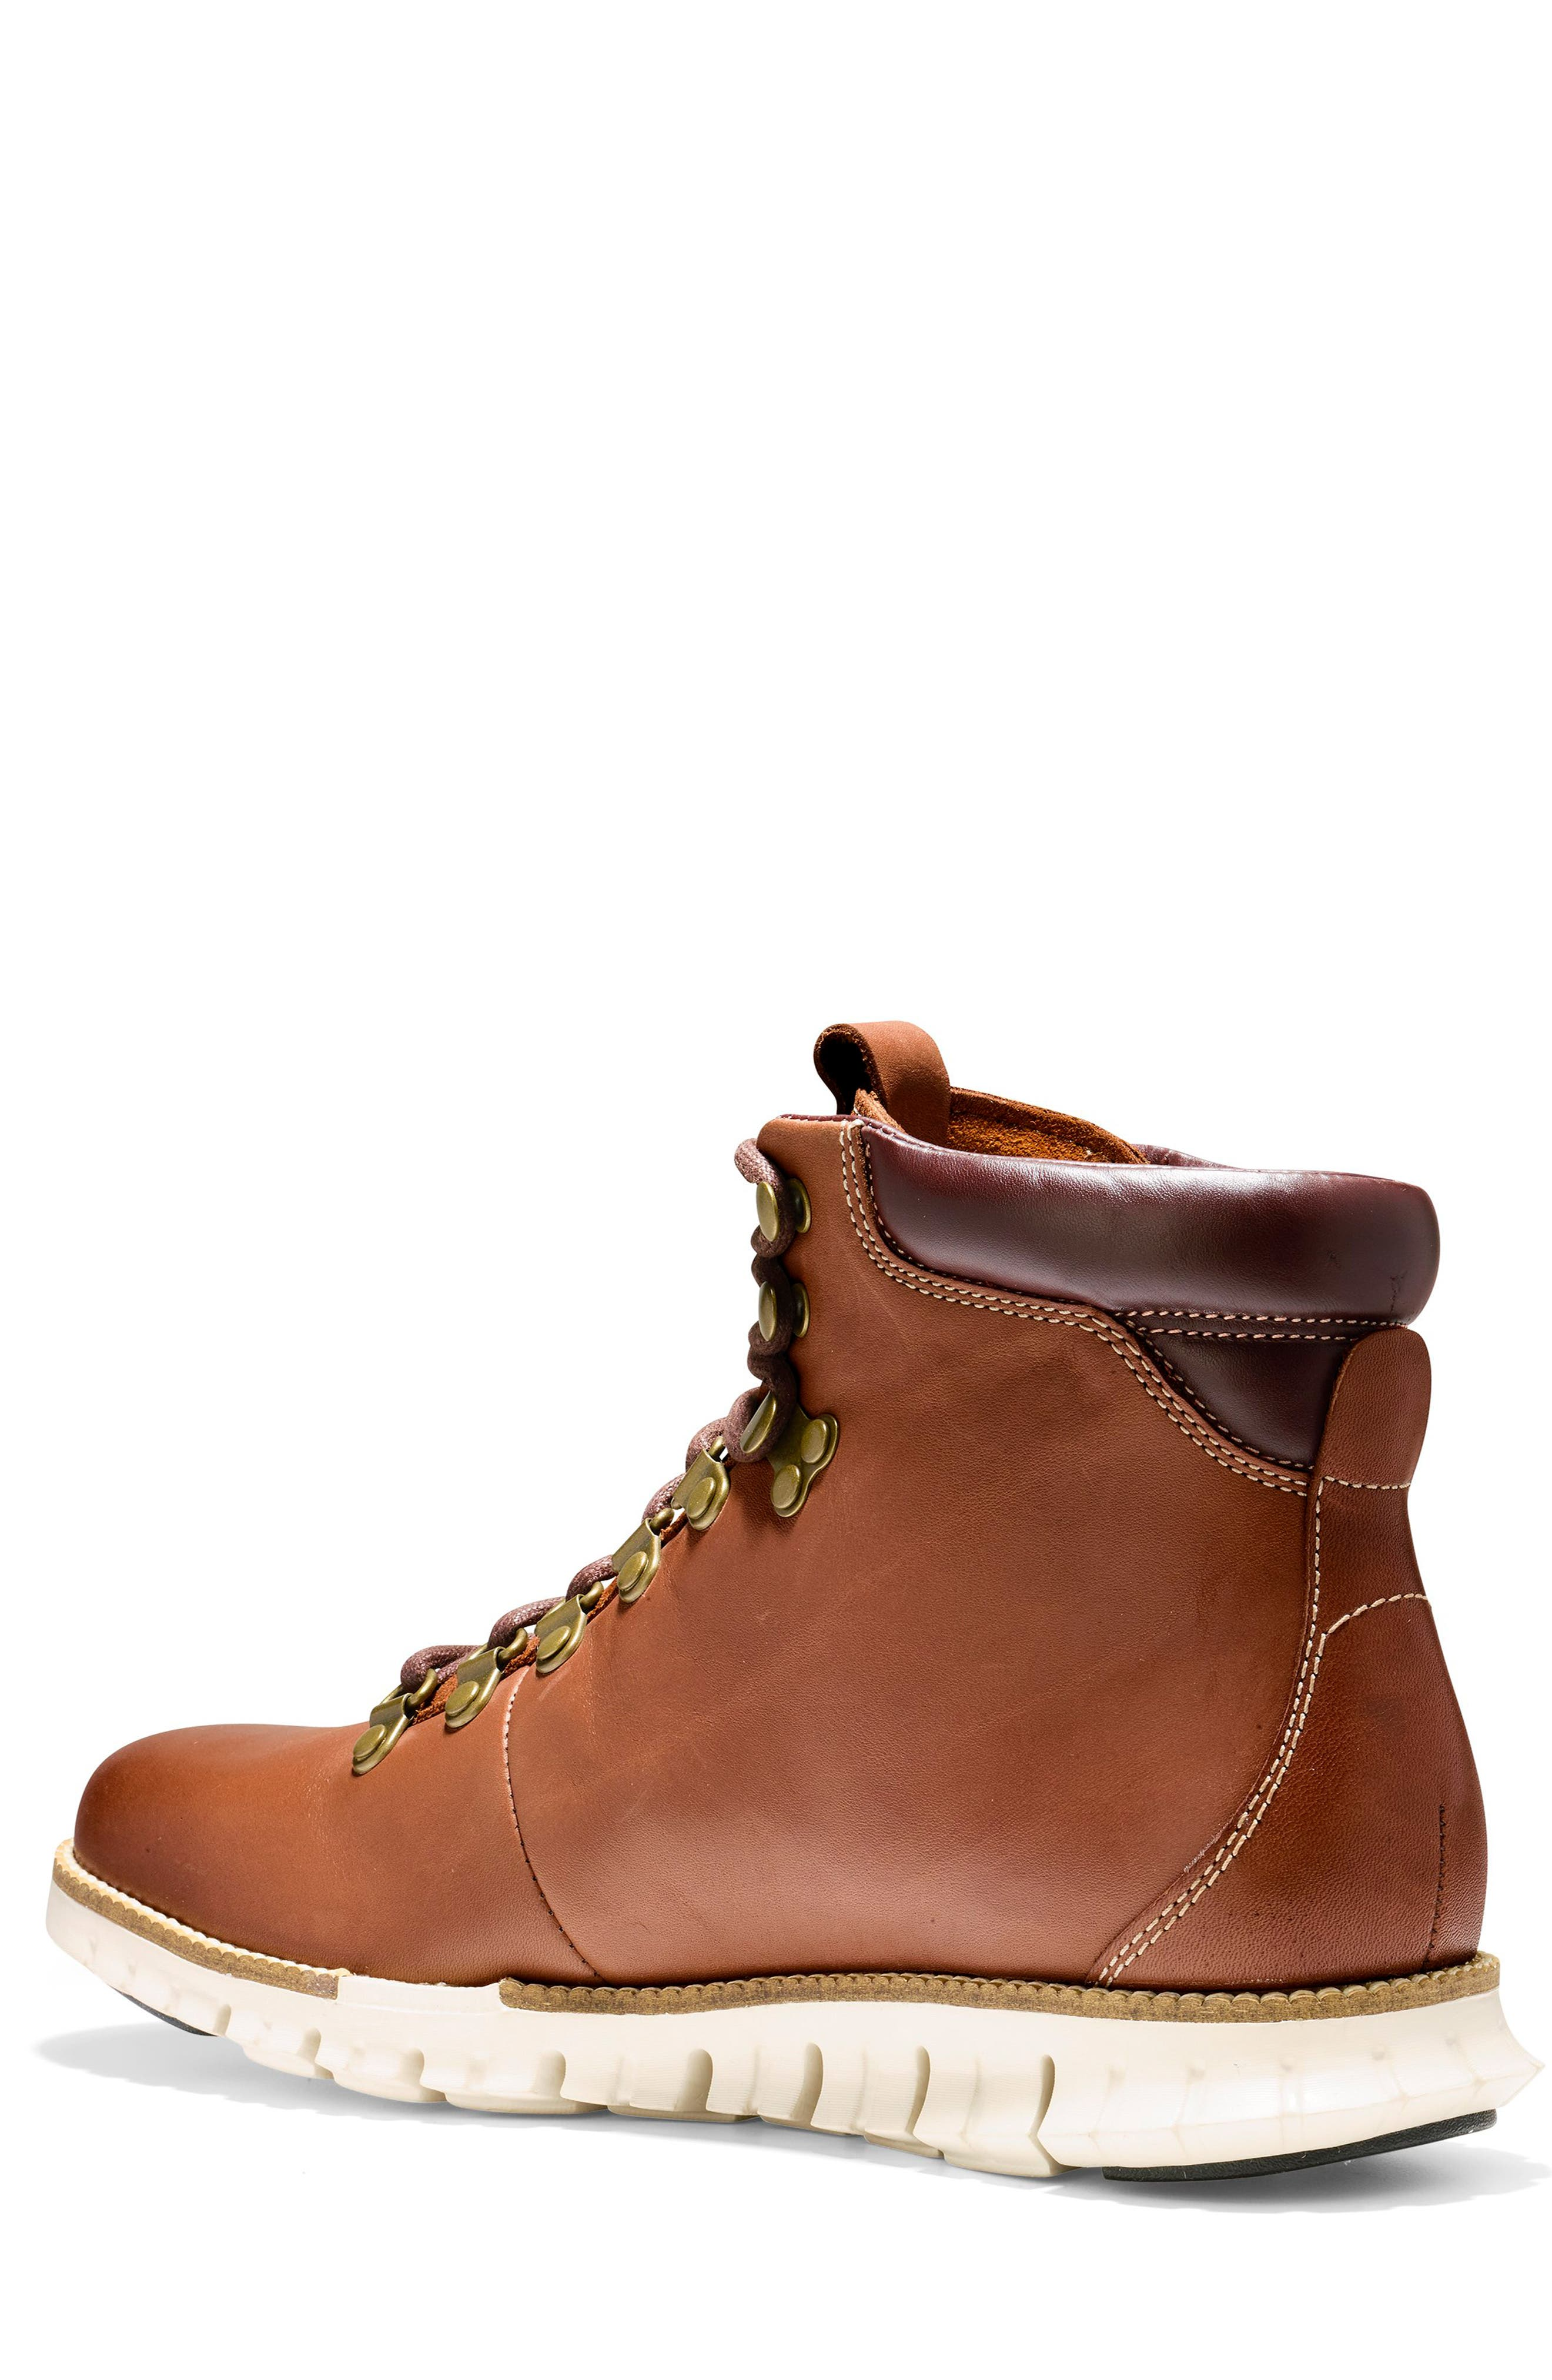 COLE HAAN, ZeroGrand Water Resistant Hiker Boot, Alternate thumbnail 2, color, WOODBURY / IVORY LEATHER